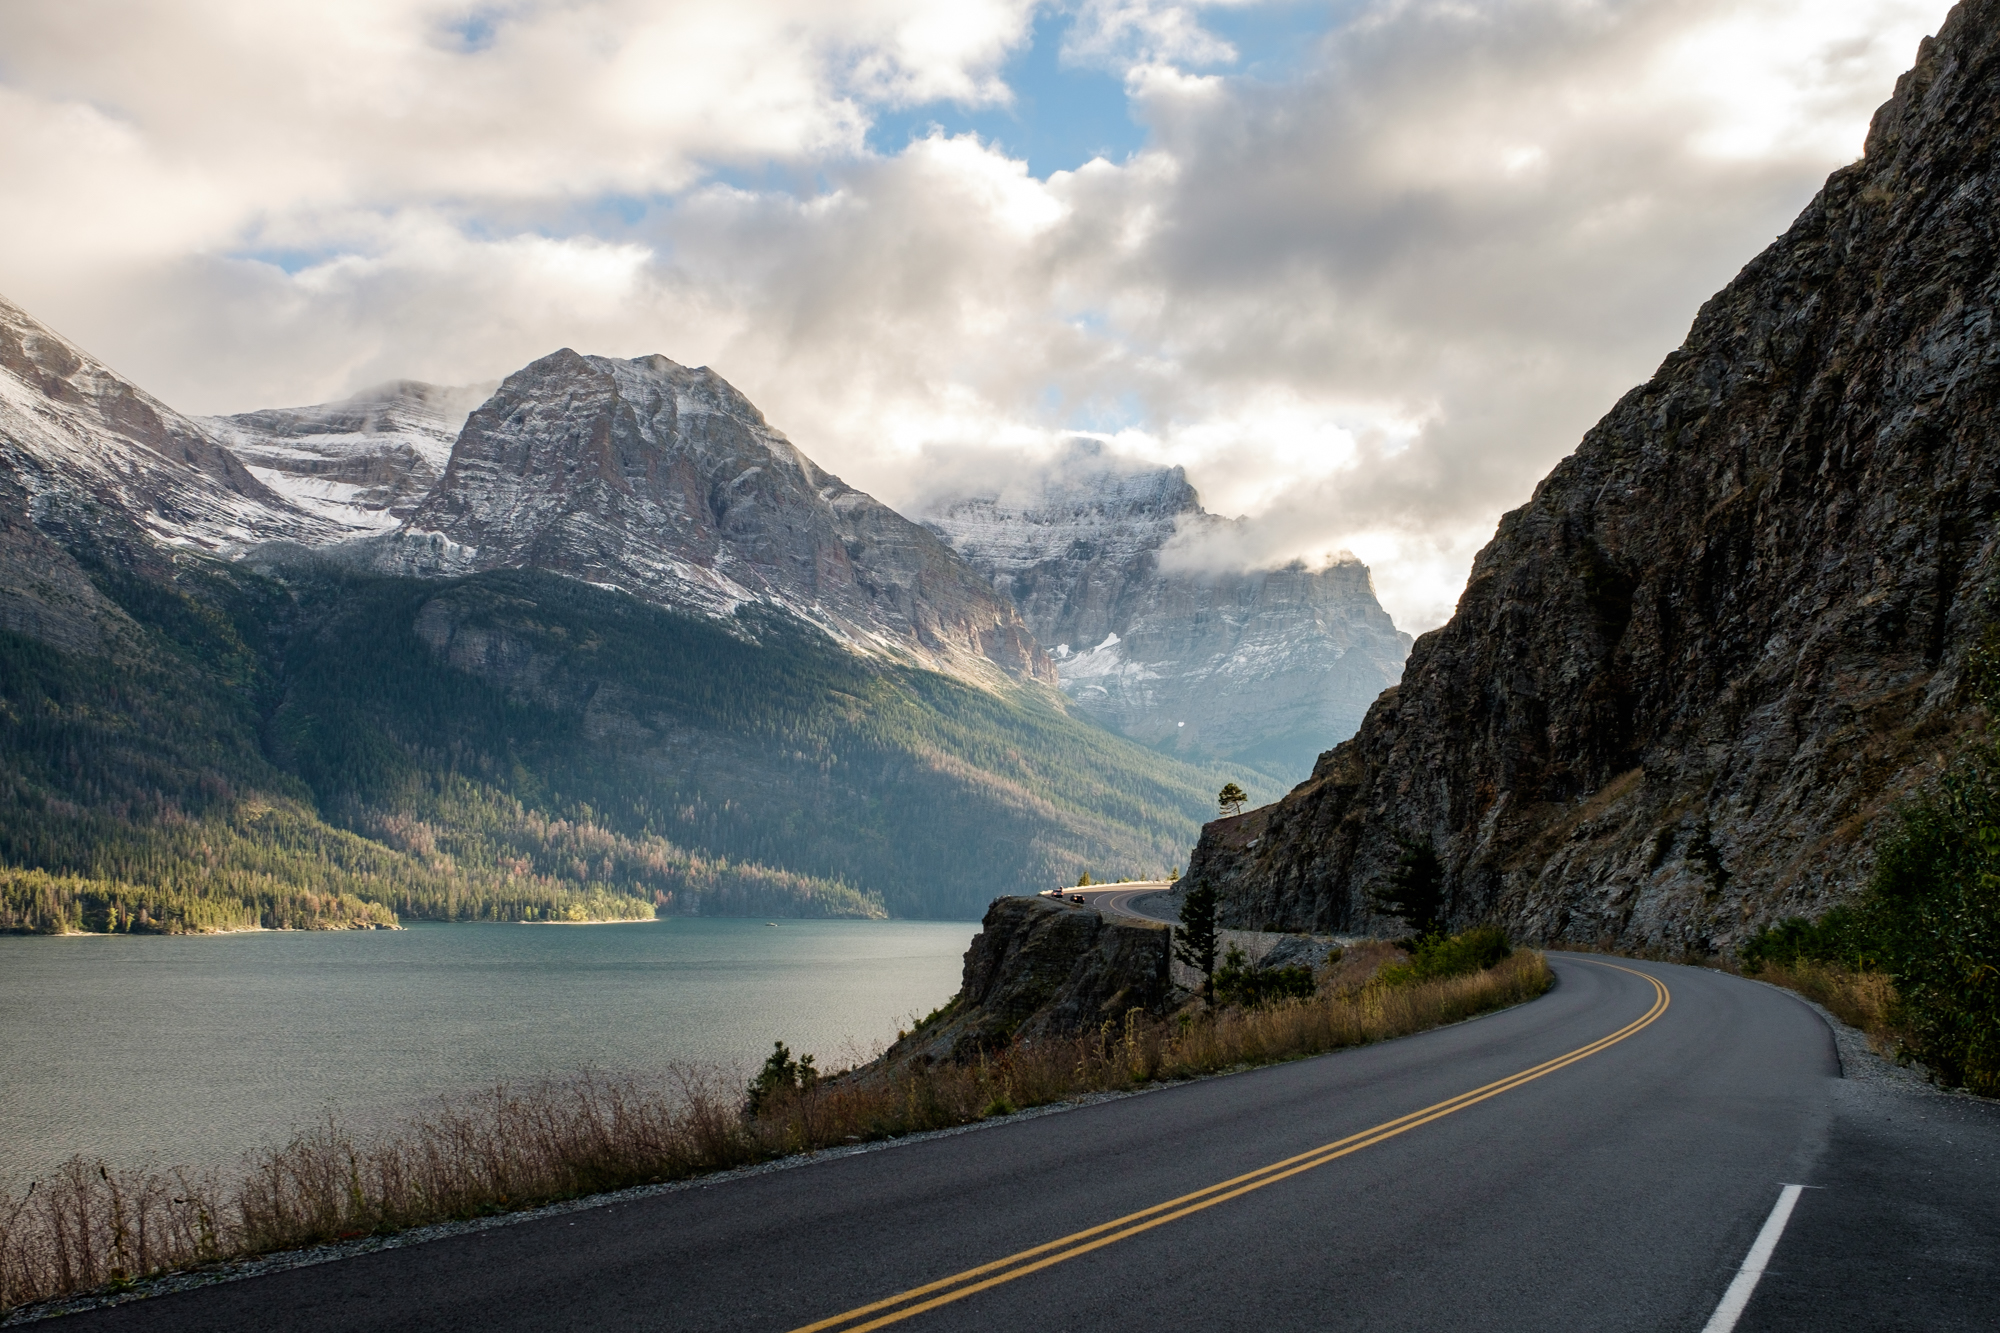 Going-to-the-Sun Road is the most popular draw in Montana's Glacier National Park.